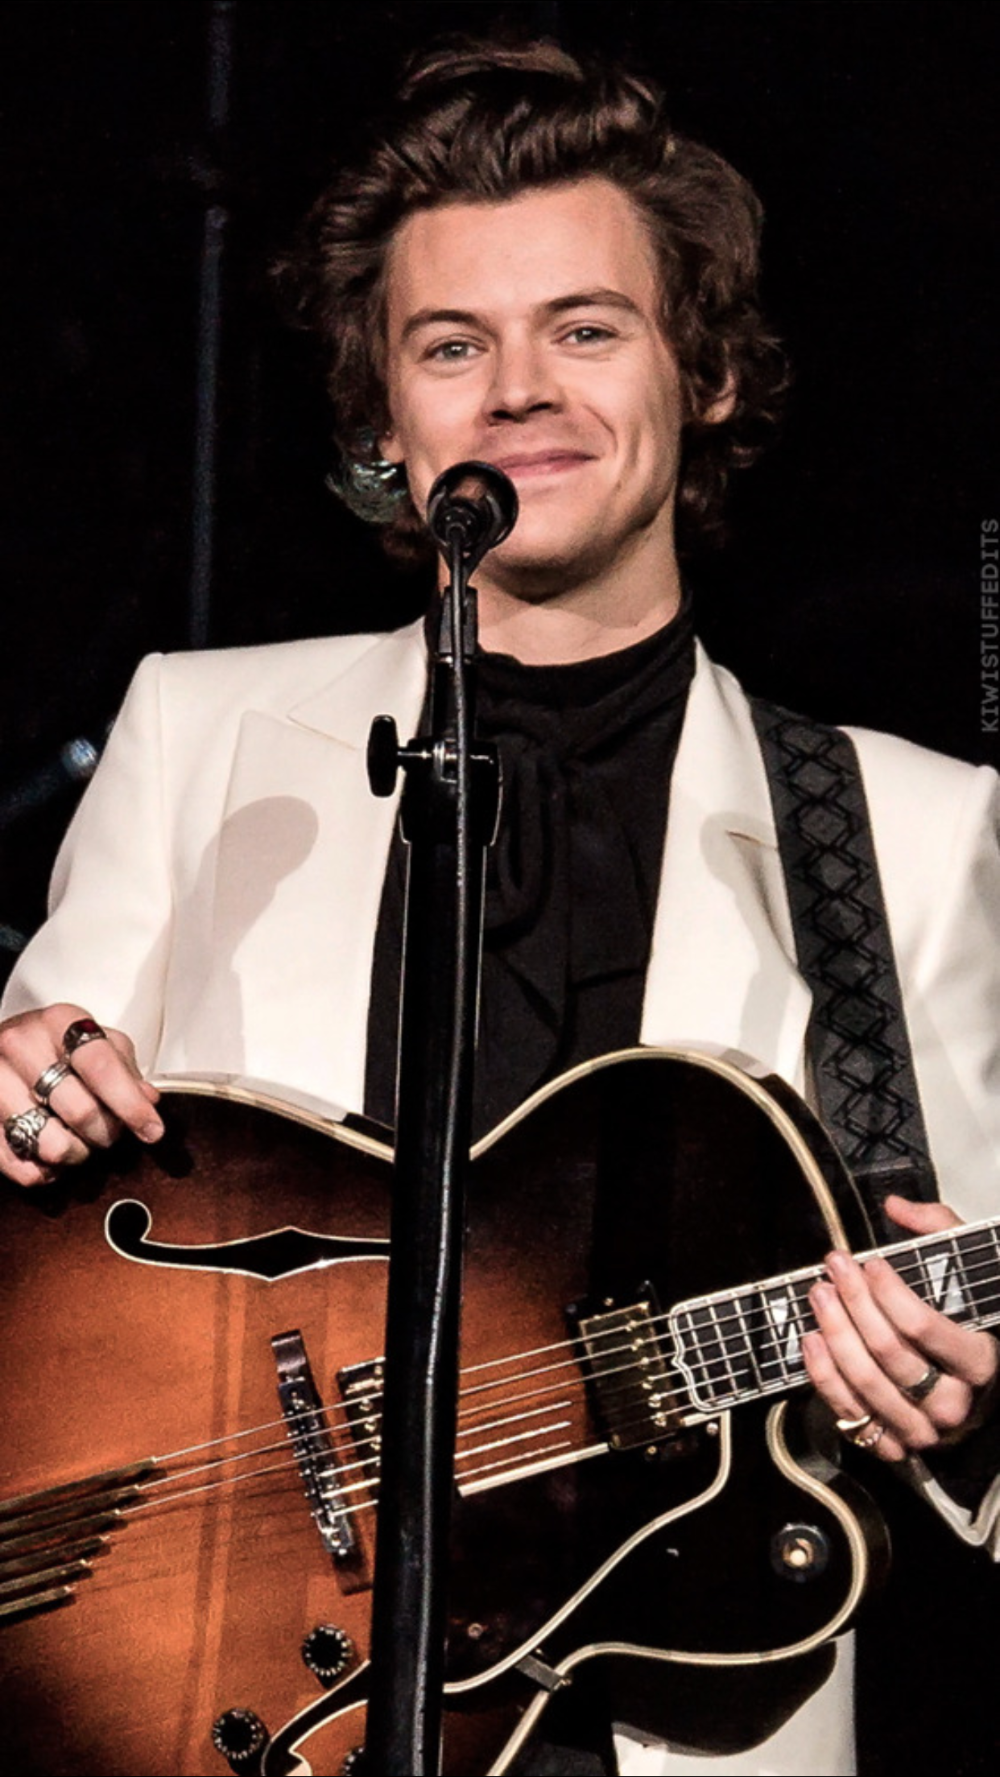 Harry Styles Born: 1st February 1994 is an English singer, songwriter, and actor. He rose to prominence as a member of the … | Estilos harry, Cantores, Harry styles